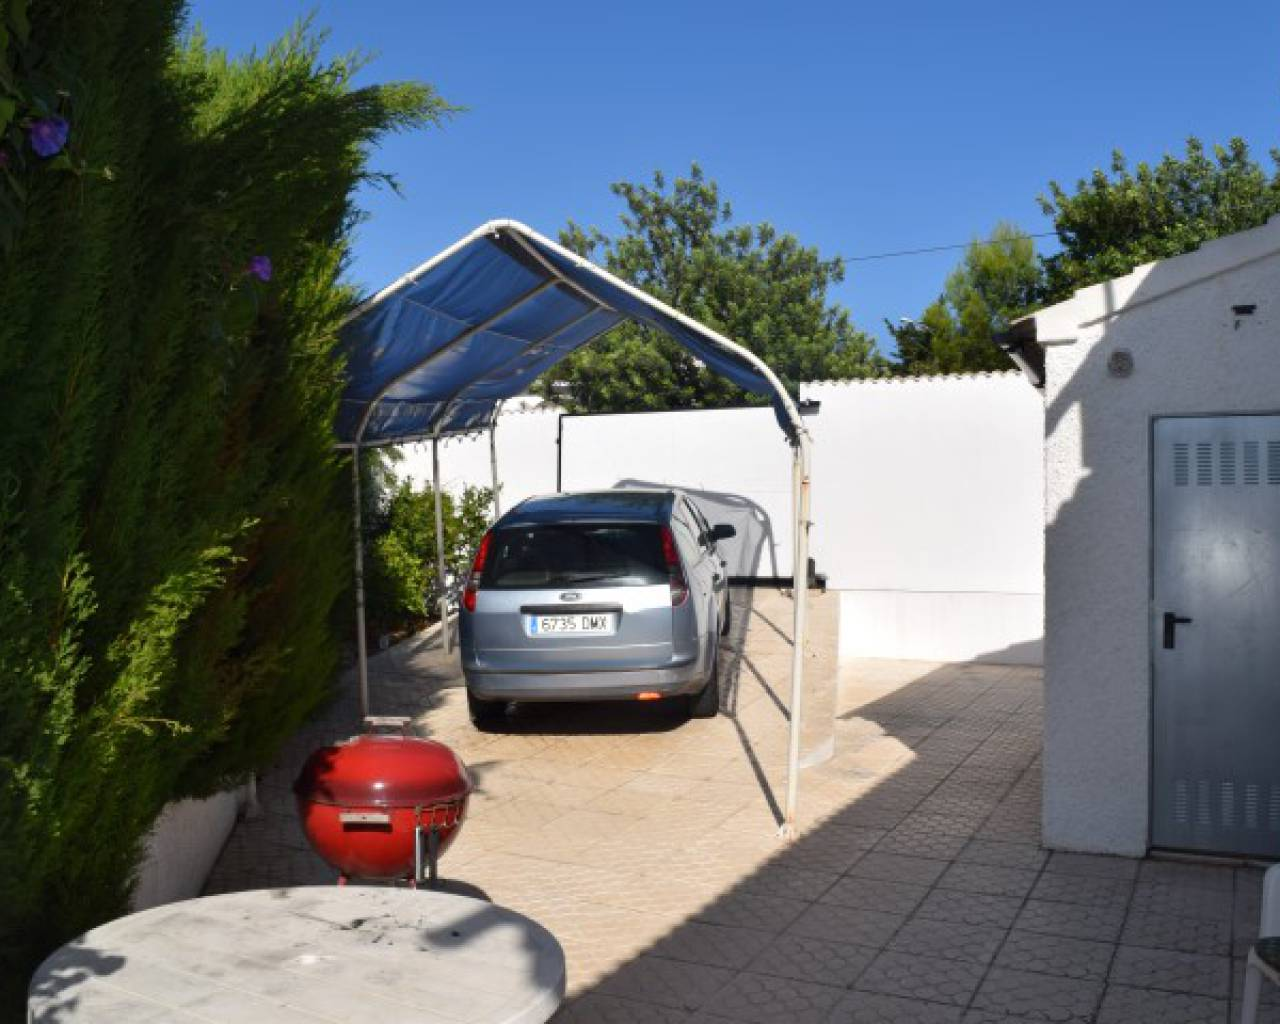 Reventa - Chalé Independiente (Villa) - Alicante* NO USAR -  Ciudad Quesada